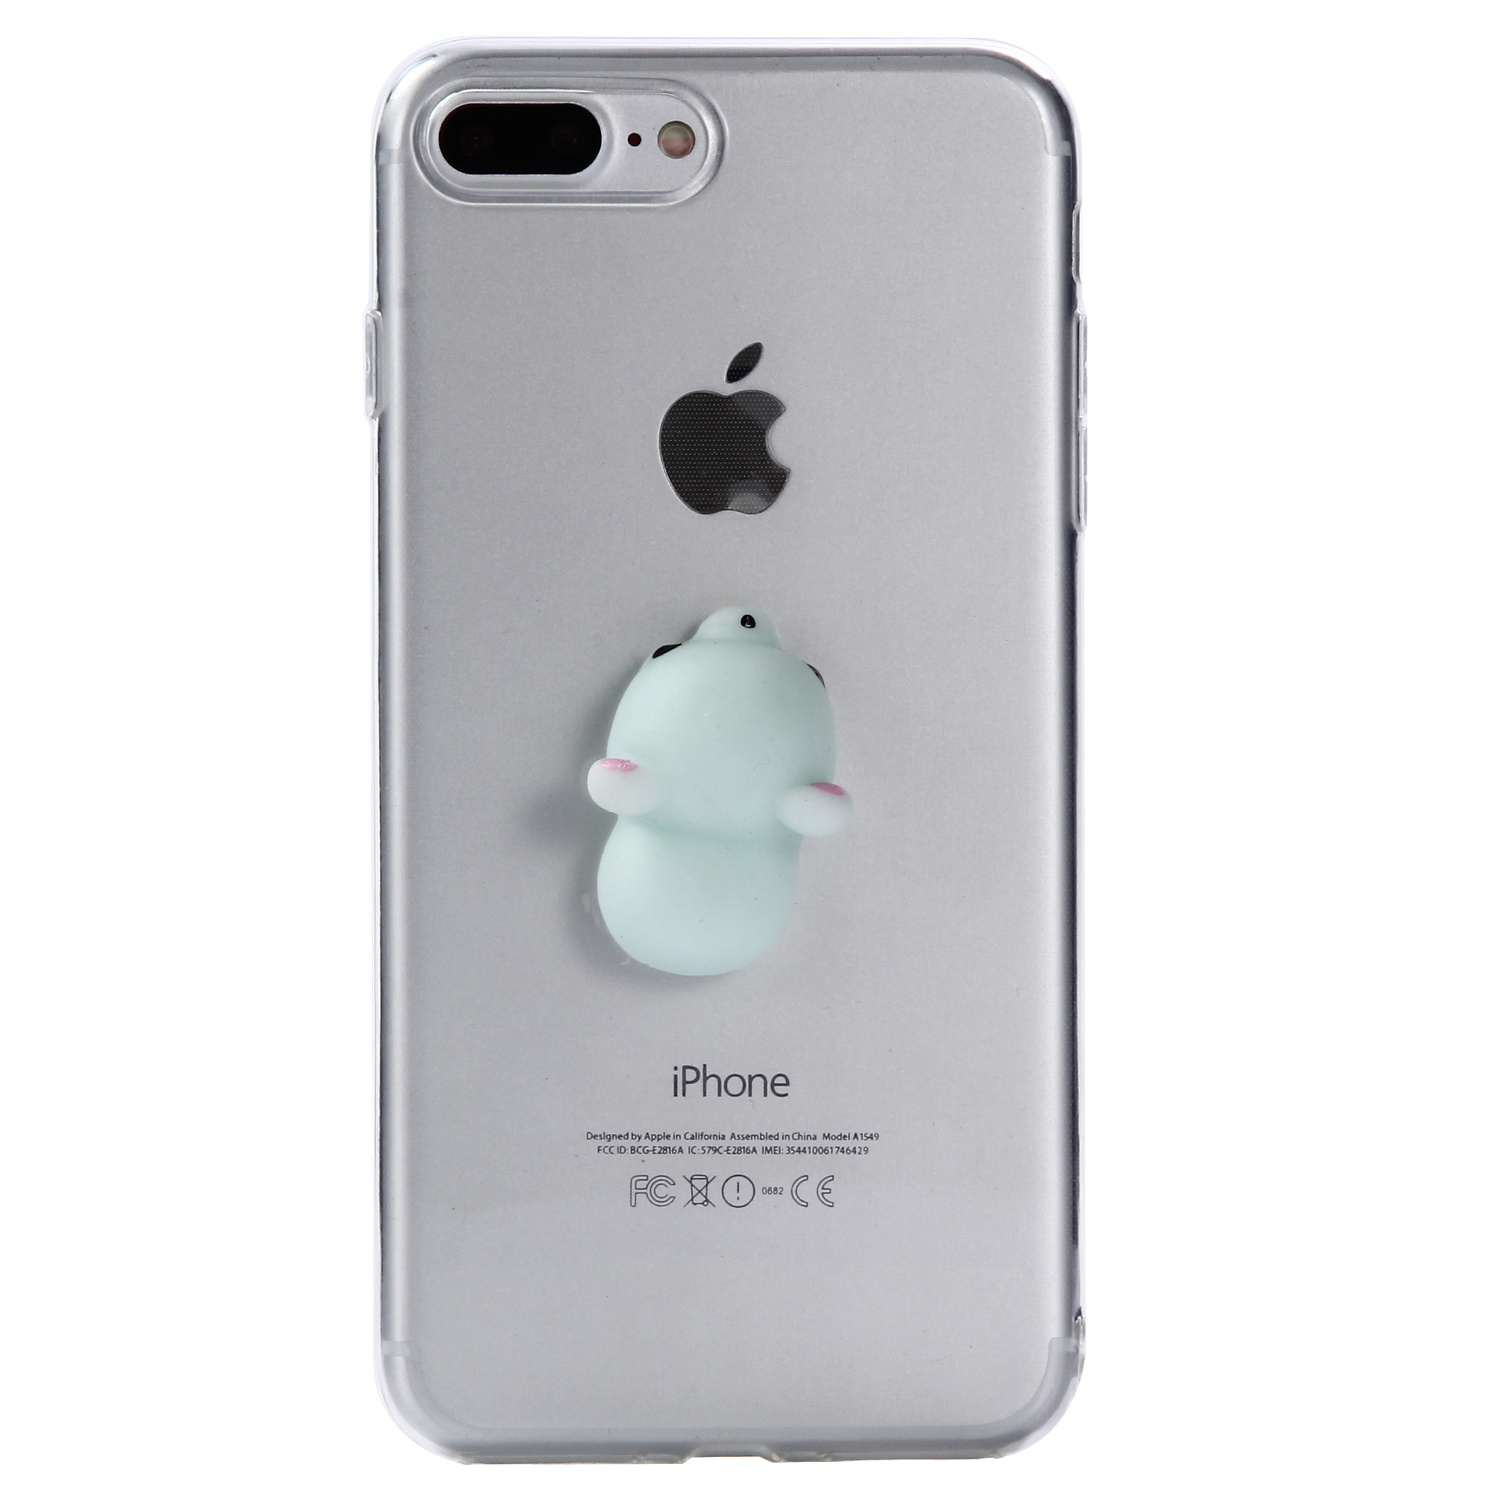 Squishy Case : Cute 3D Soft Squishy Animal TPU Soft Clear Back Case Cover For iPhone 5 6 7 8Pus eBay